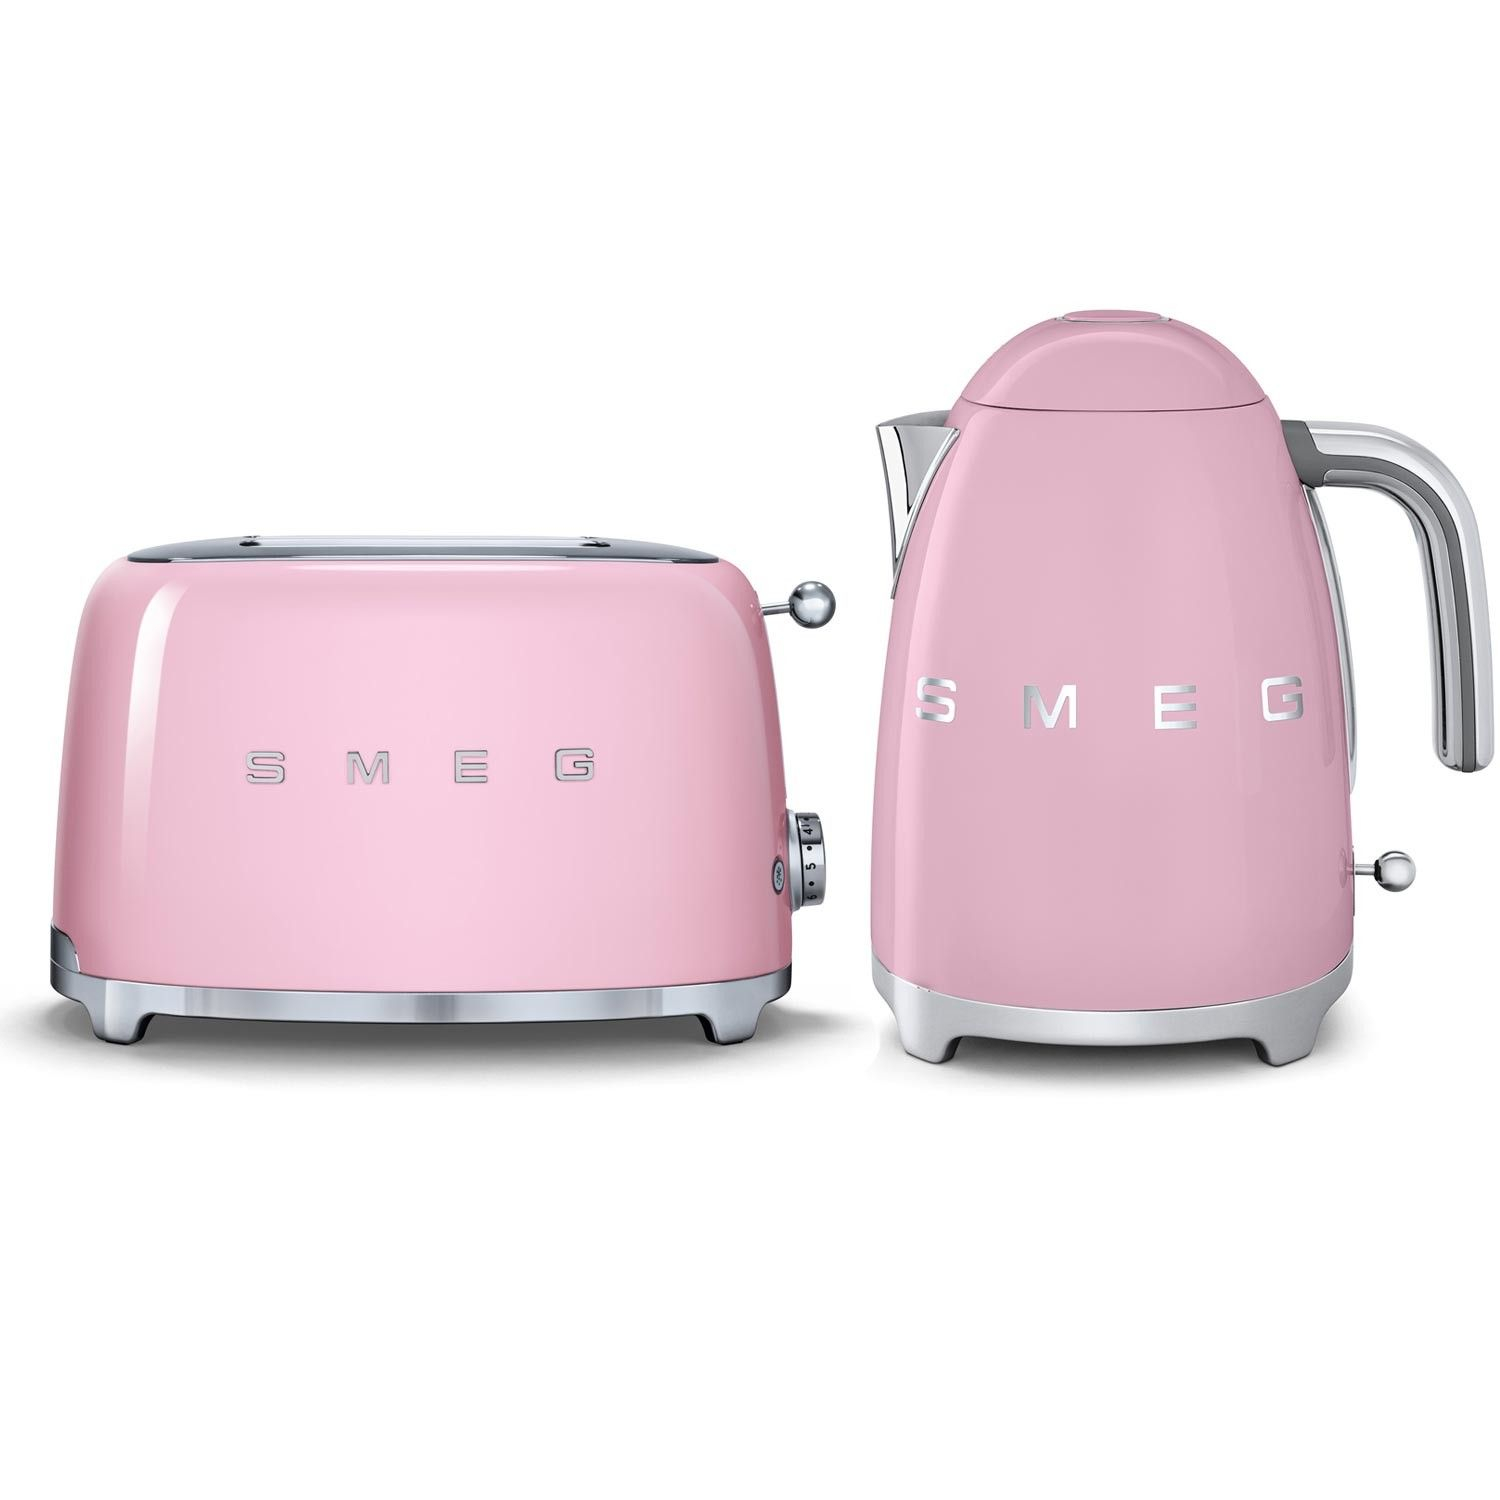 Pink Smeg toaster and kettle set in